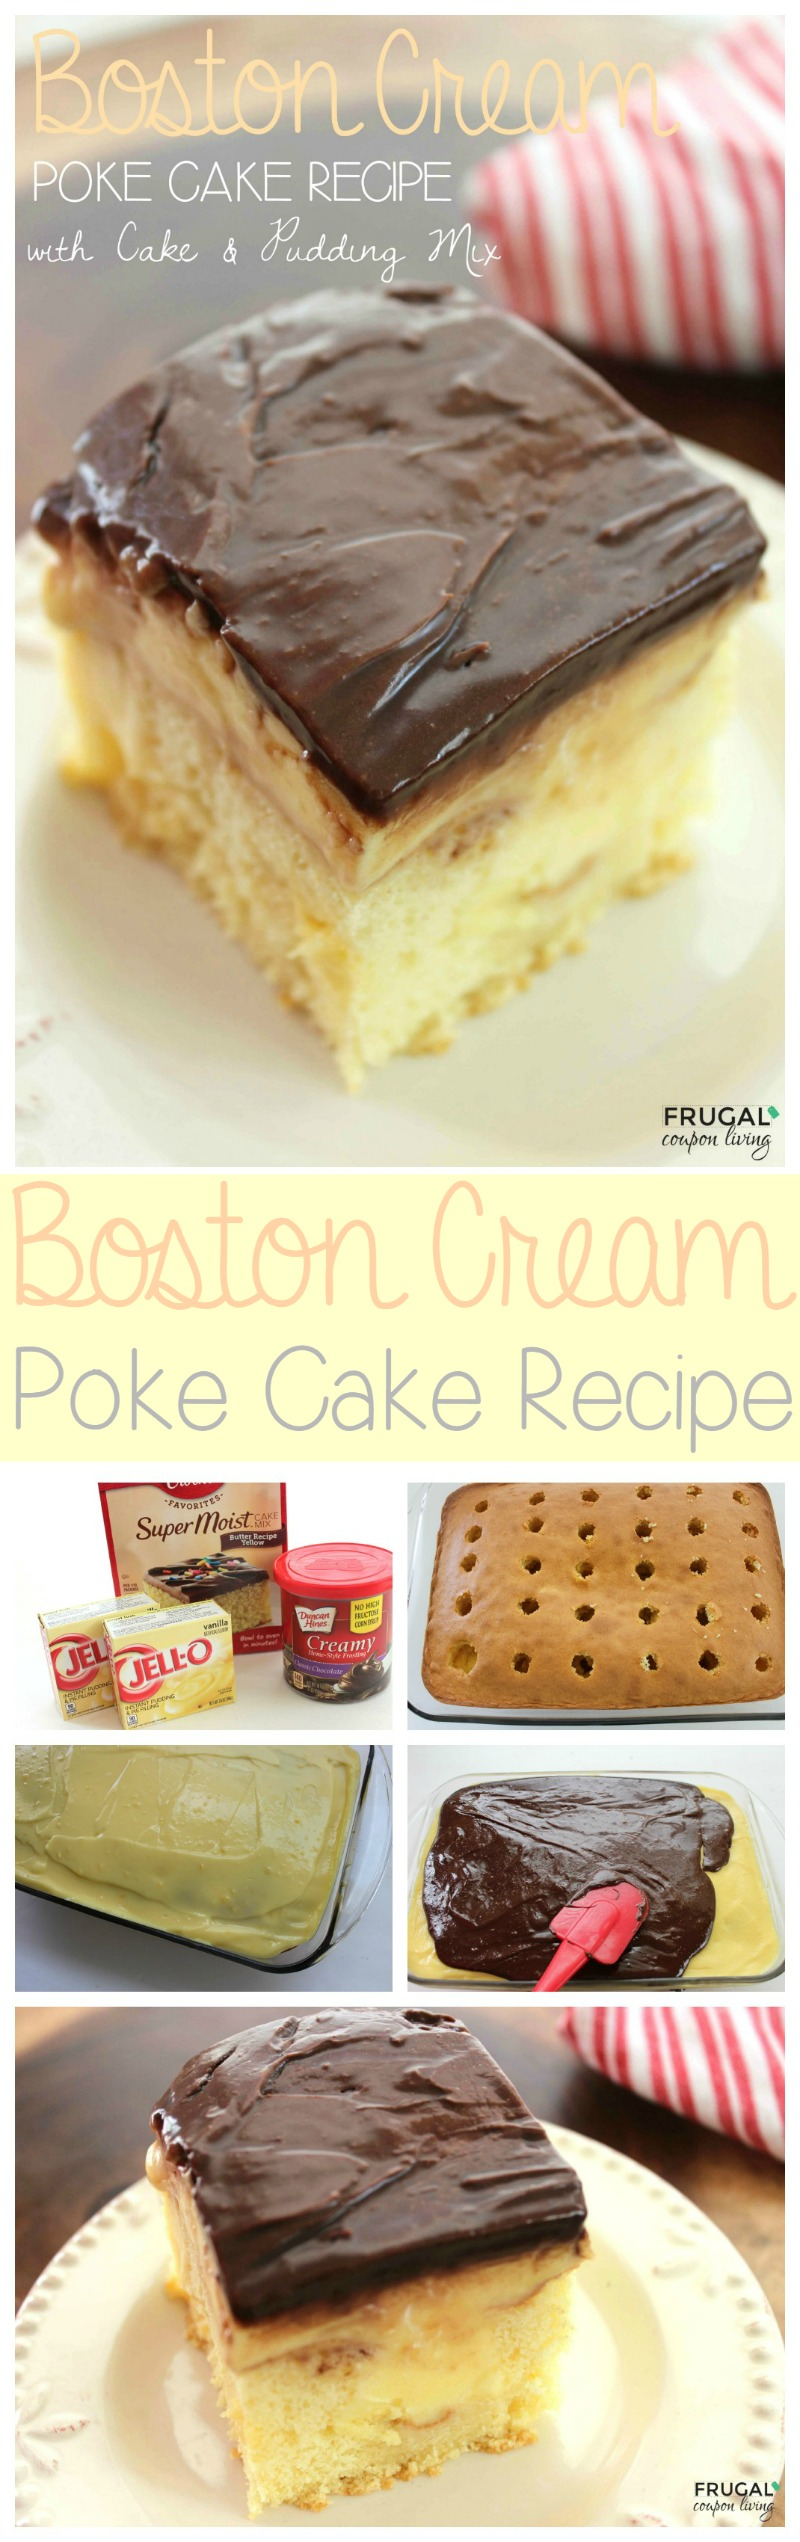 boston-cream-poke-cake-frugal-coupon-living-Collage